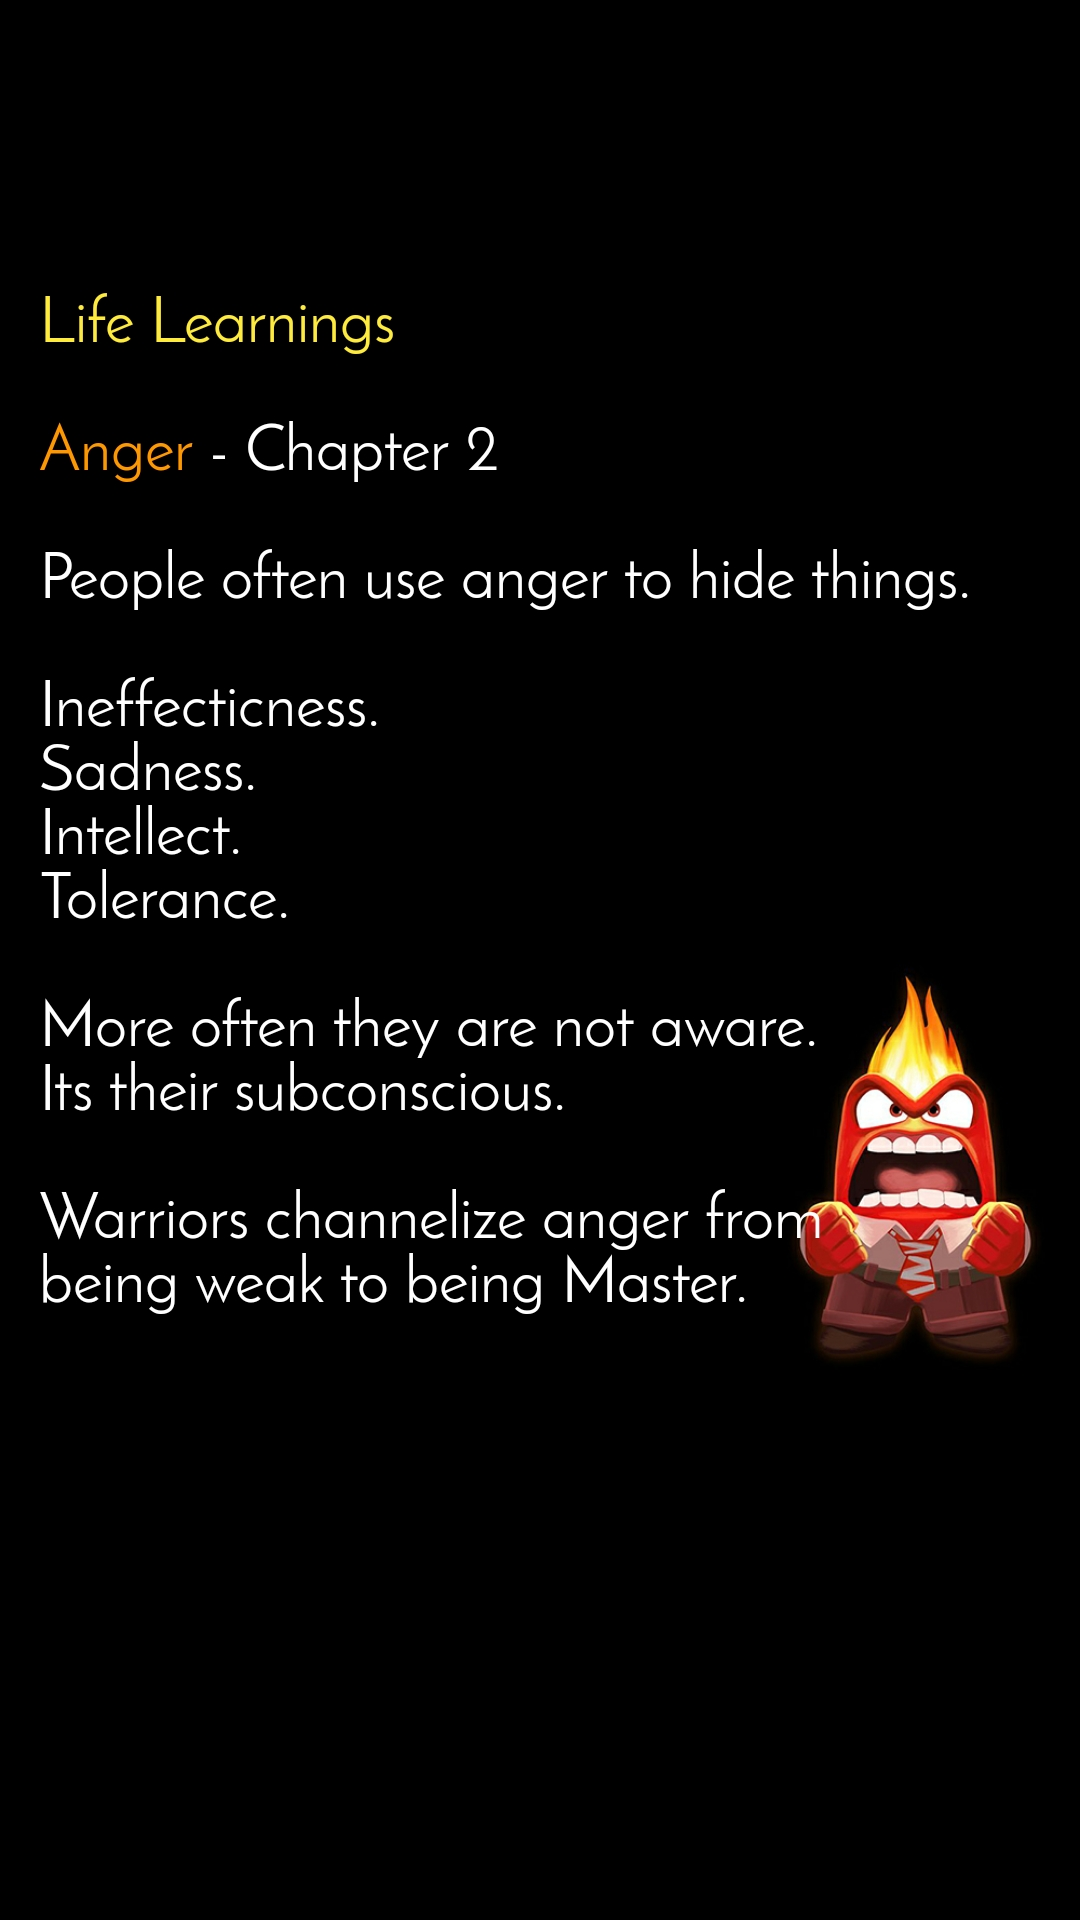 Life Learnings  Anger - Chapter 2  People often use anger to hide things.   Ineffecticness.  Sadness. Intellect. Tolerance.  More often they are not aware. Its their subconscious.  Warriors channelize anger from being weak to being Master.